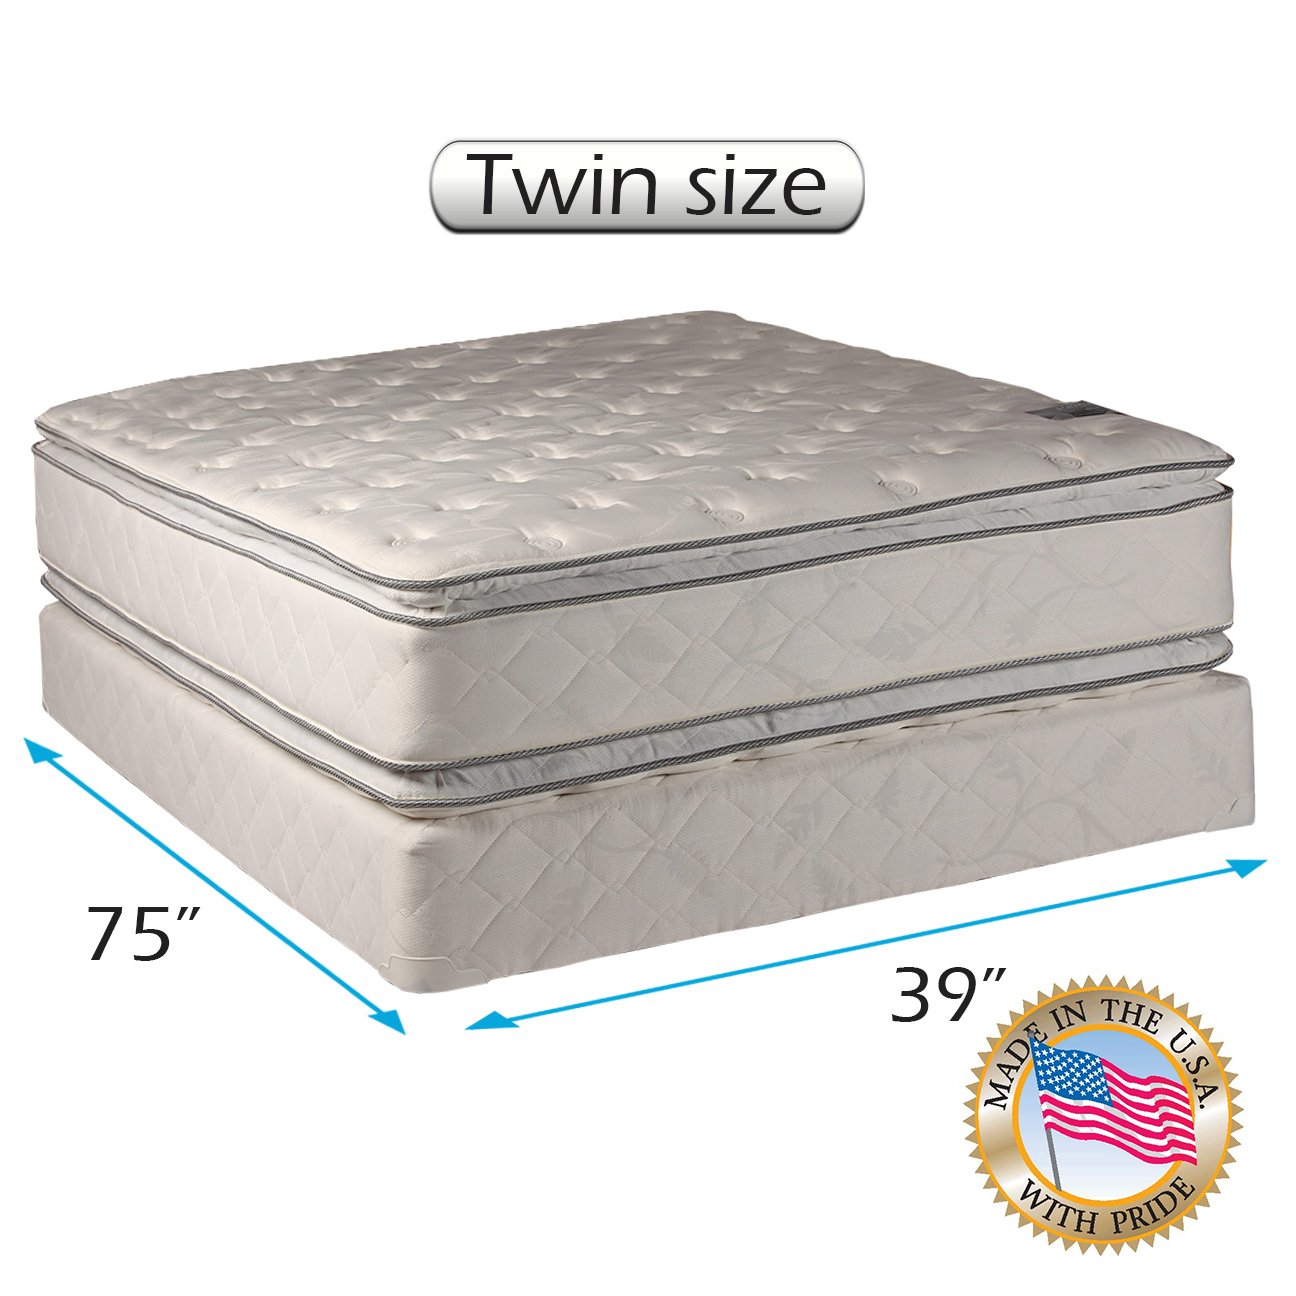 Dream Solutions Pillow Top Mattress and Box Spring Set - Double-Sided Sleep System with Enhanced Cushion Support- Fully Assembled, Great for Your Back, longlasting Comfort (Twin - 39''x75''x12'') by Dream Solutions USA